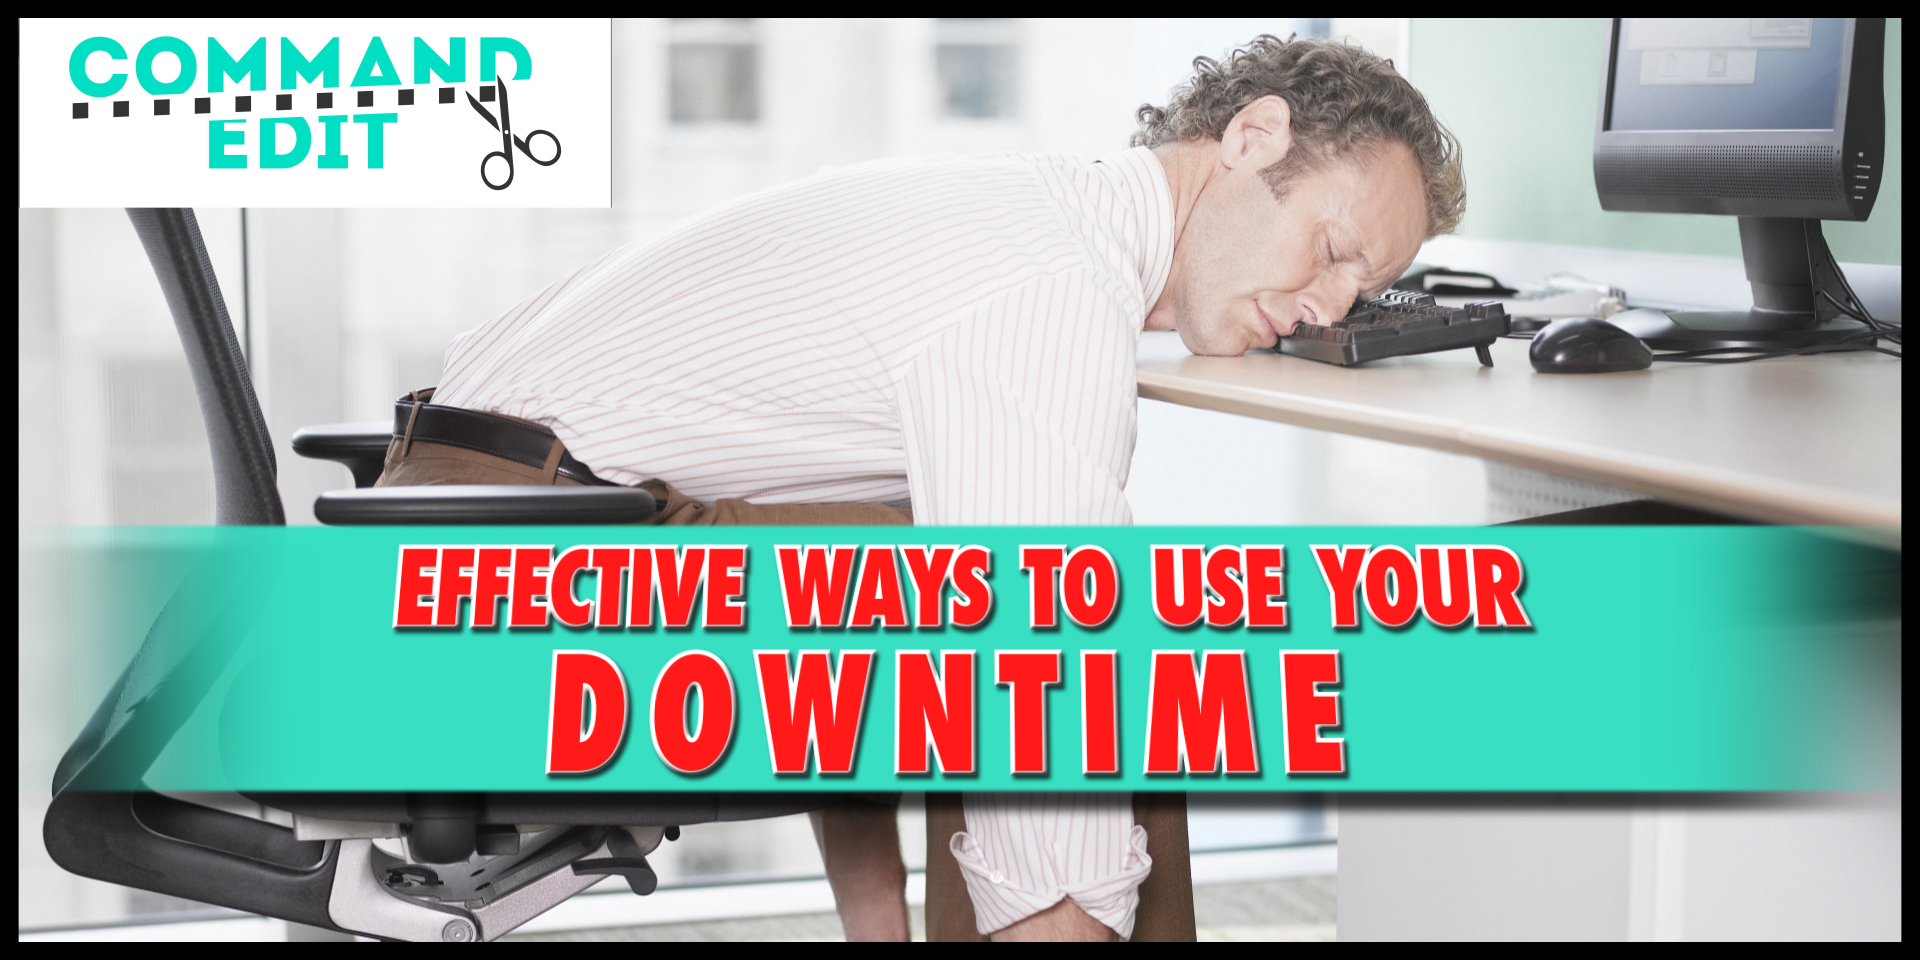 Command Edit Podcast Episode 14 Effective Ways to Use Your Down Time Productively